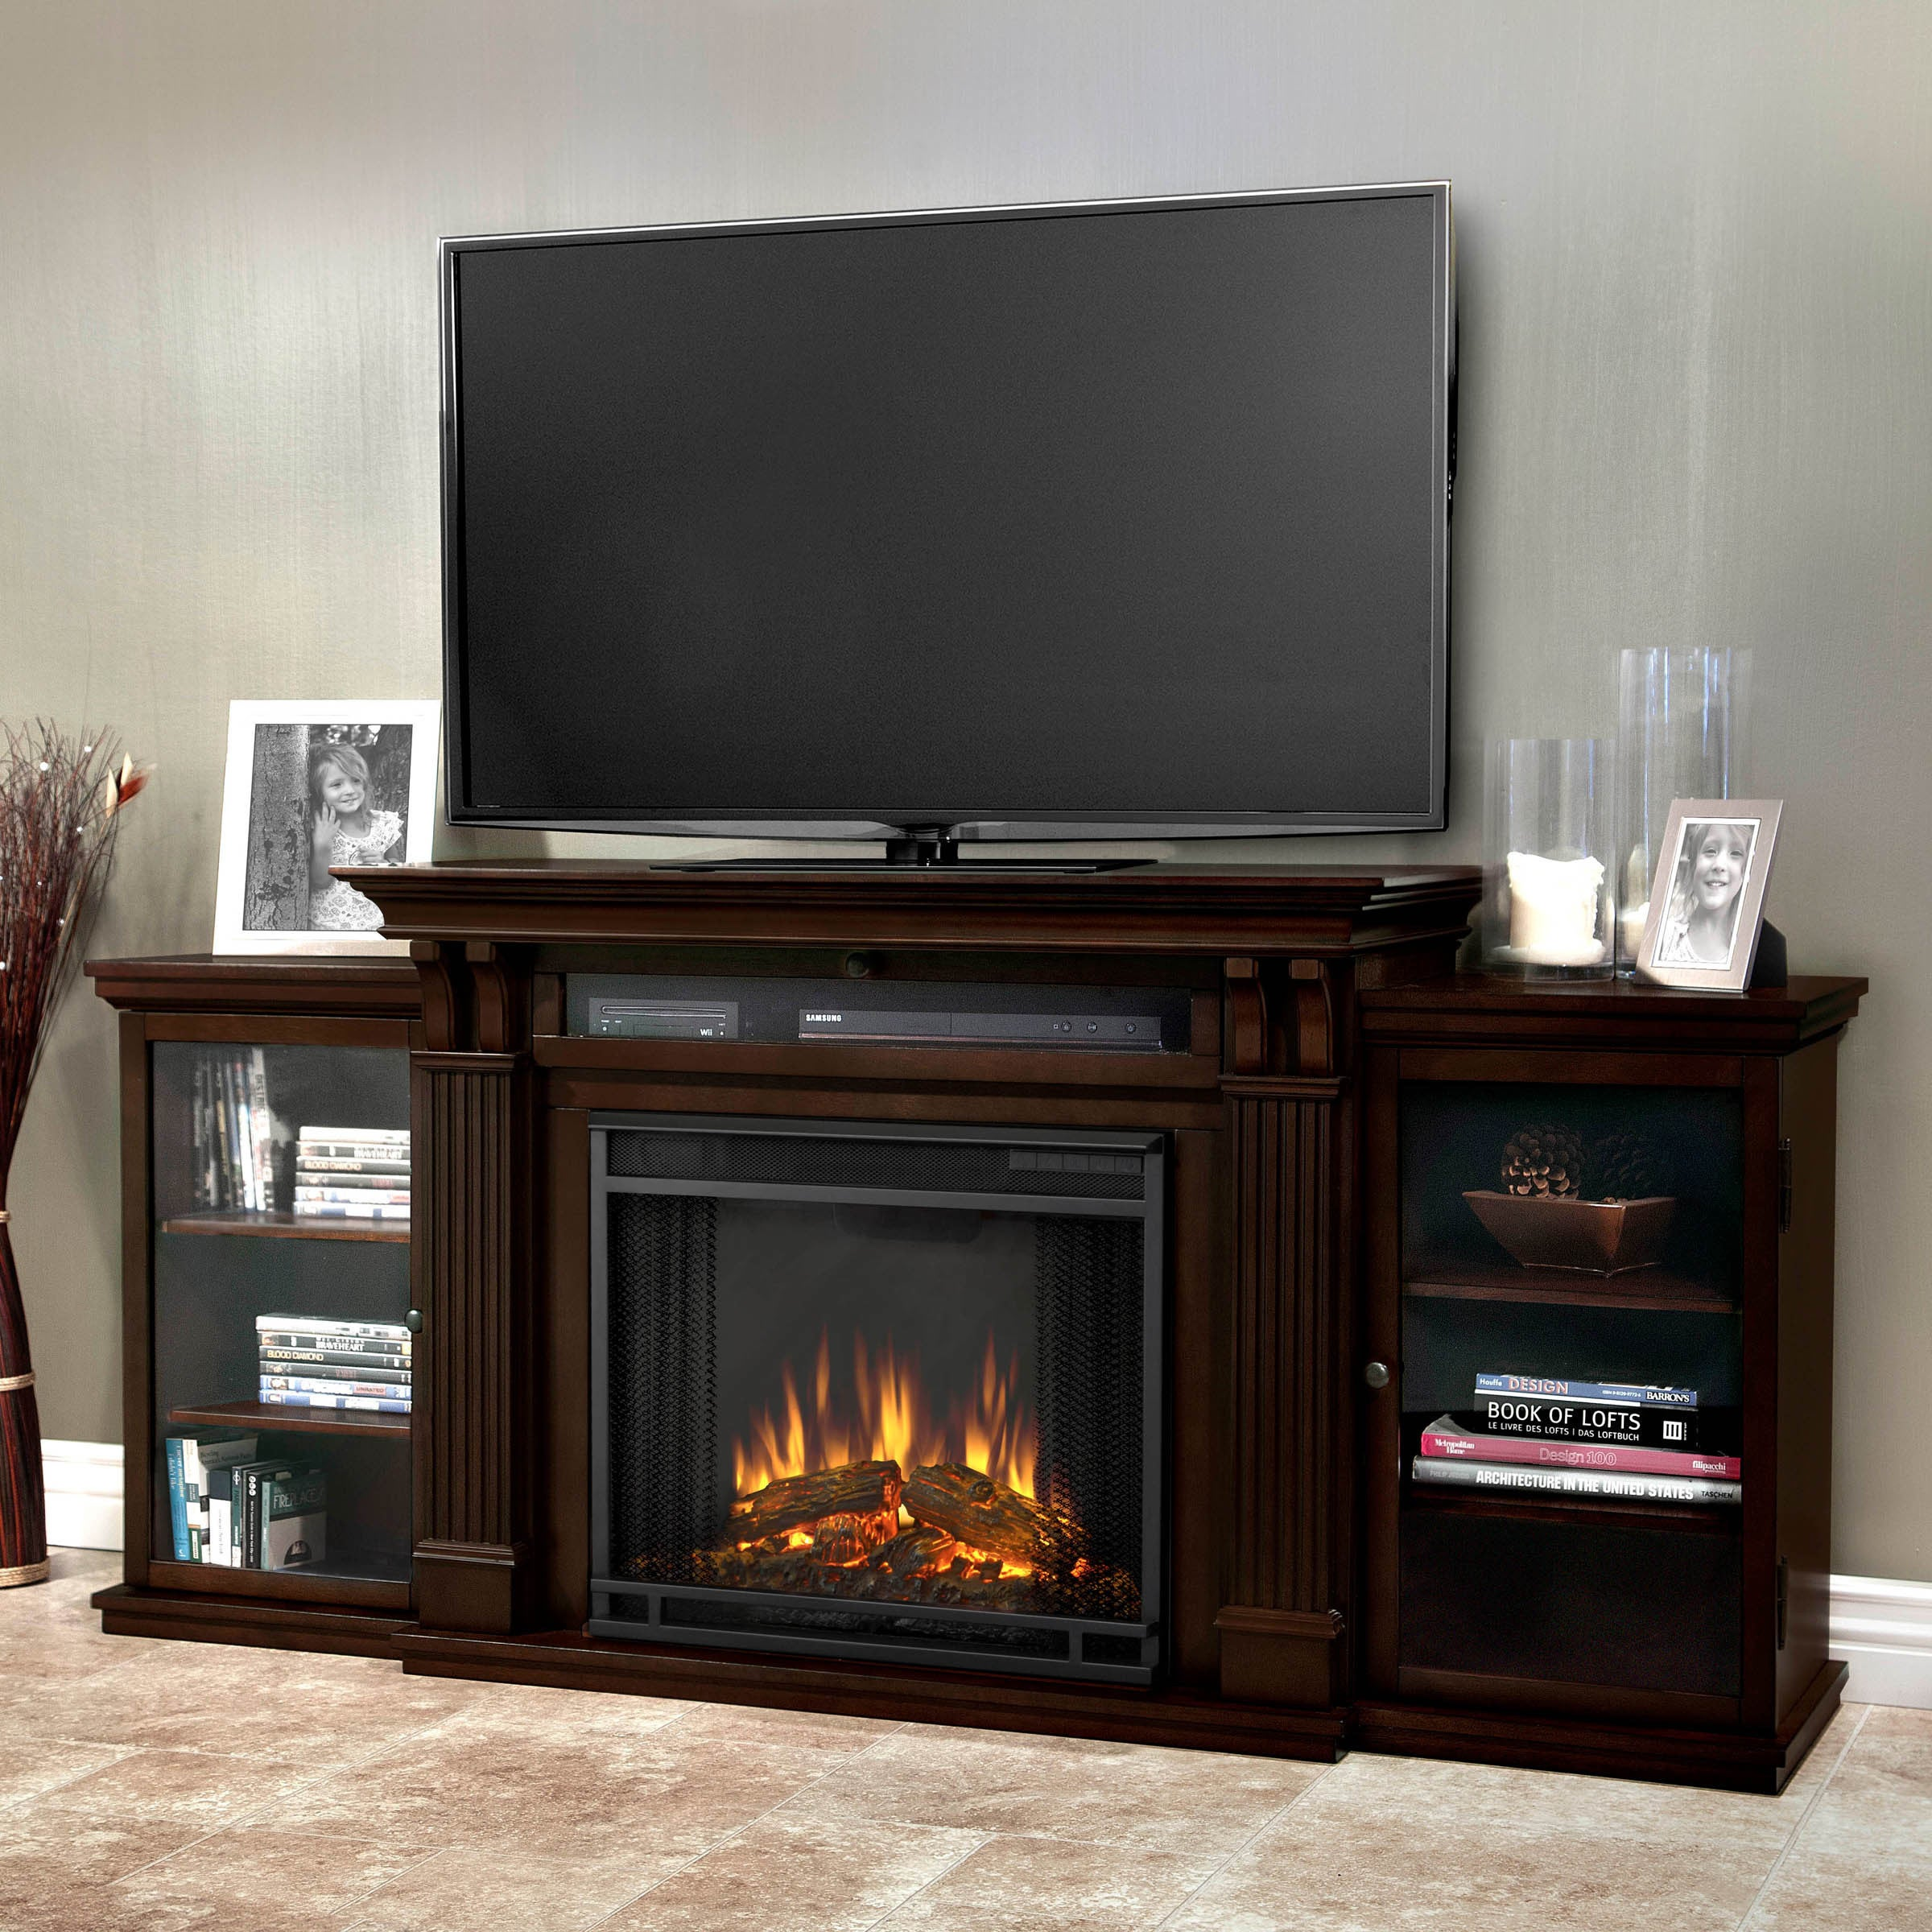 center product espresso media shipping with today free inch in stand fireplace home overstock tv console garden electric